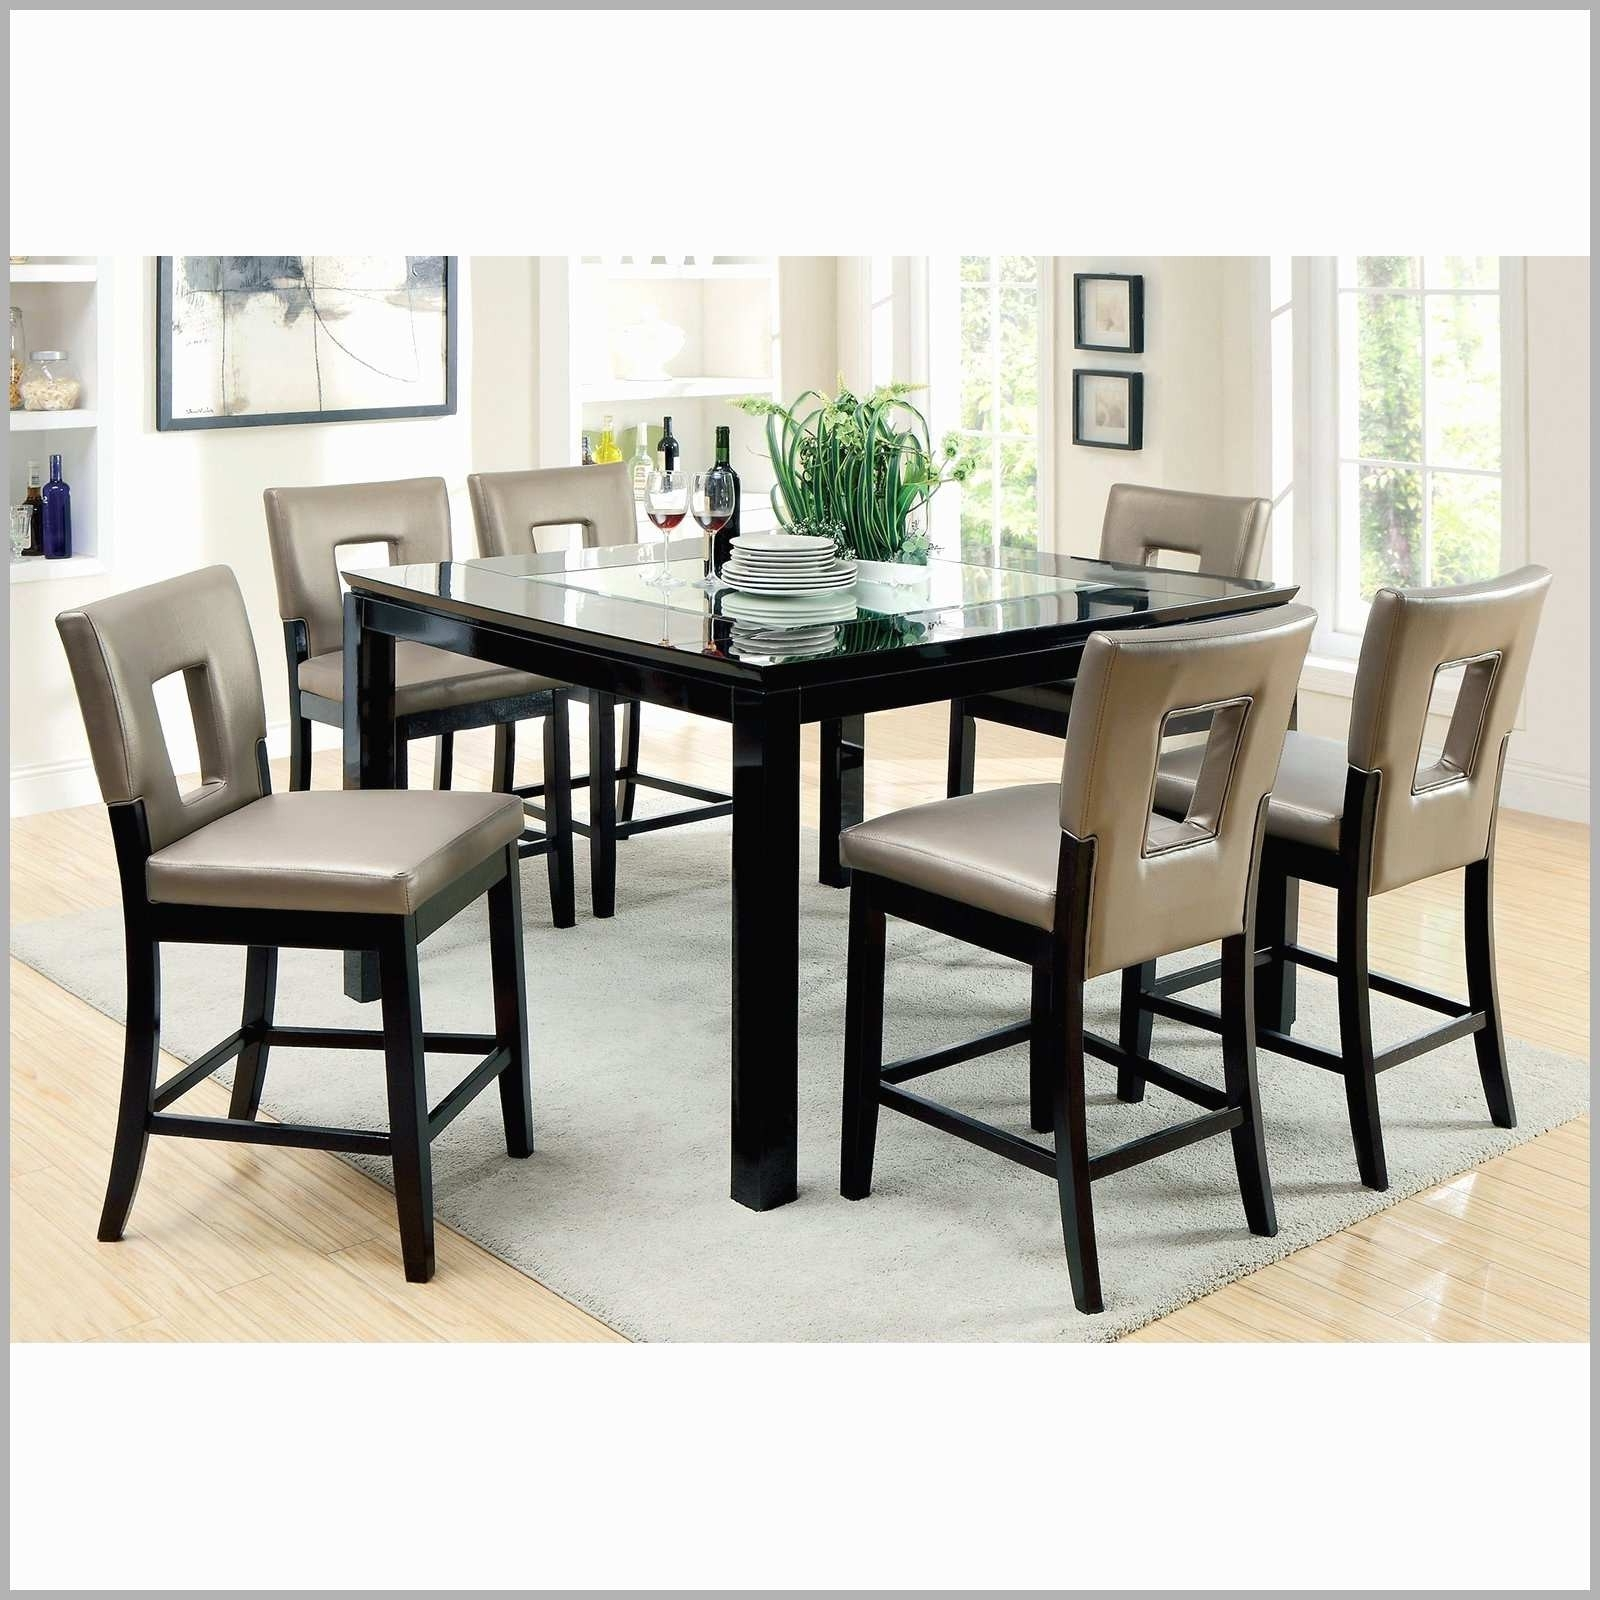 Latest Extendable Dining Tables And Chairs Pertaining To White High Gloss Extending Dining Table Luxury 8 Seater Dining Table (View 18 of 25)